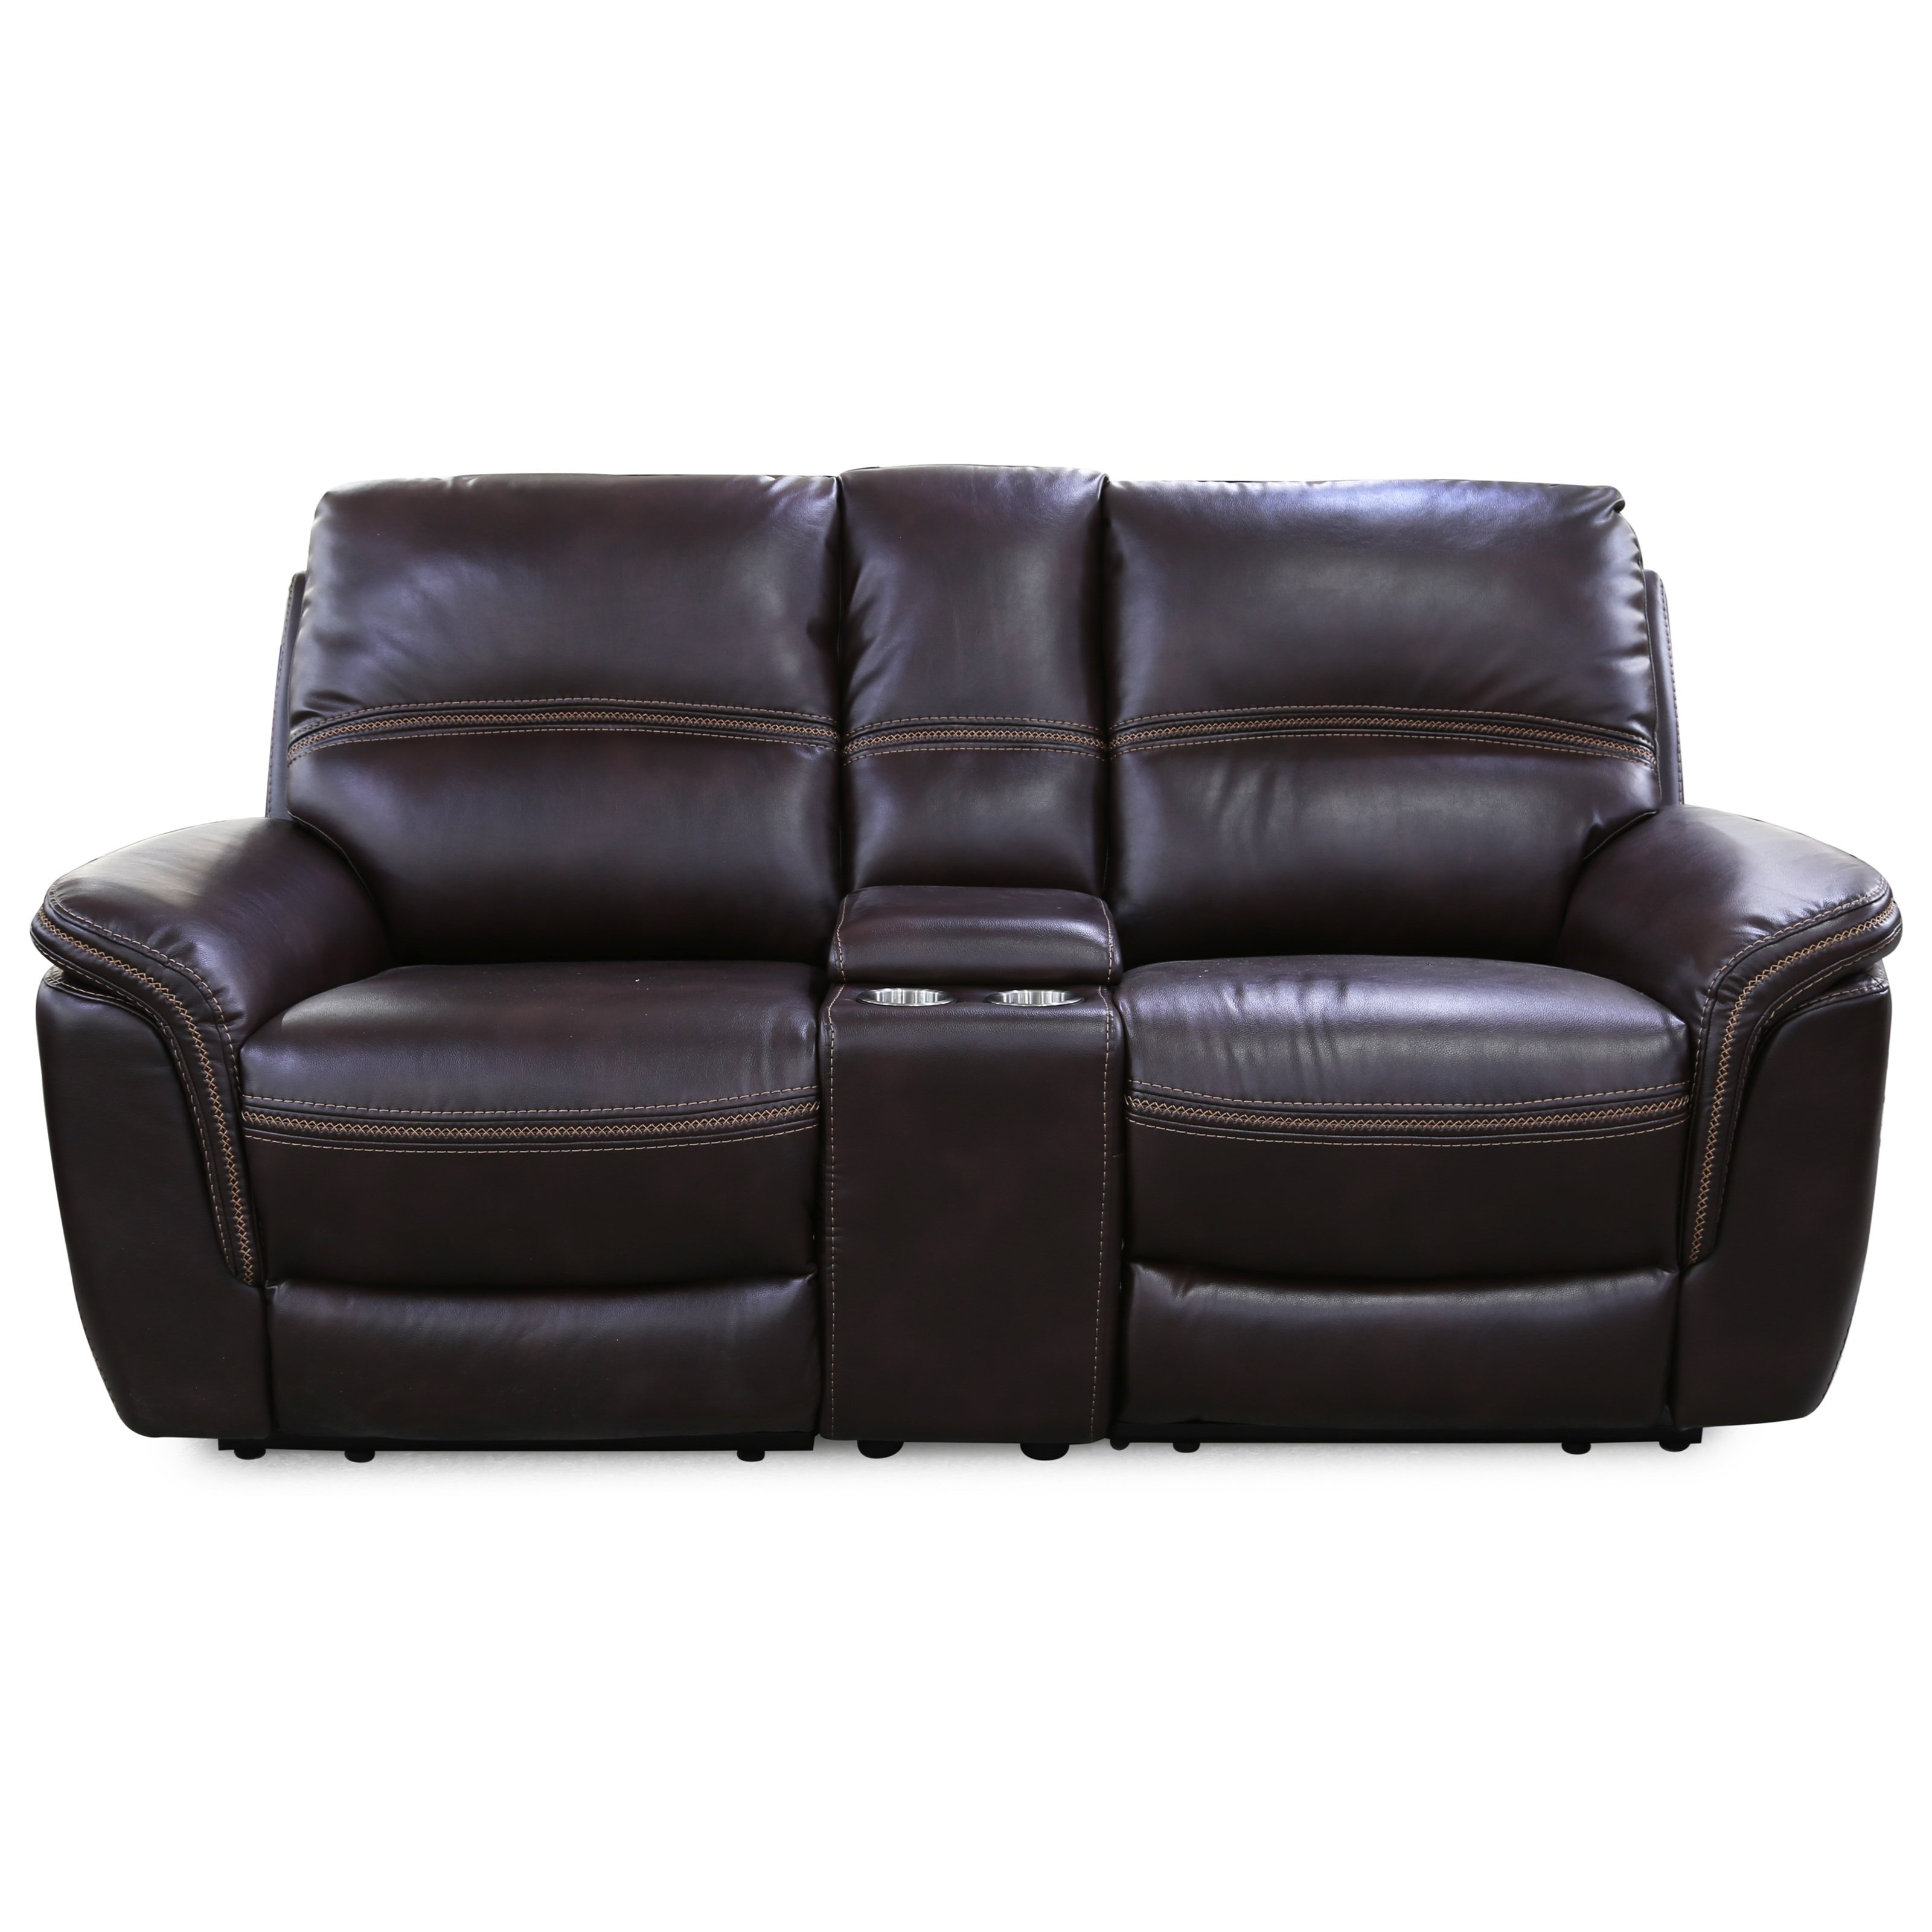 5571 Power Loveseat with Console by Cheers Sofa at Lagniappe Home Store